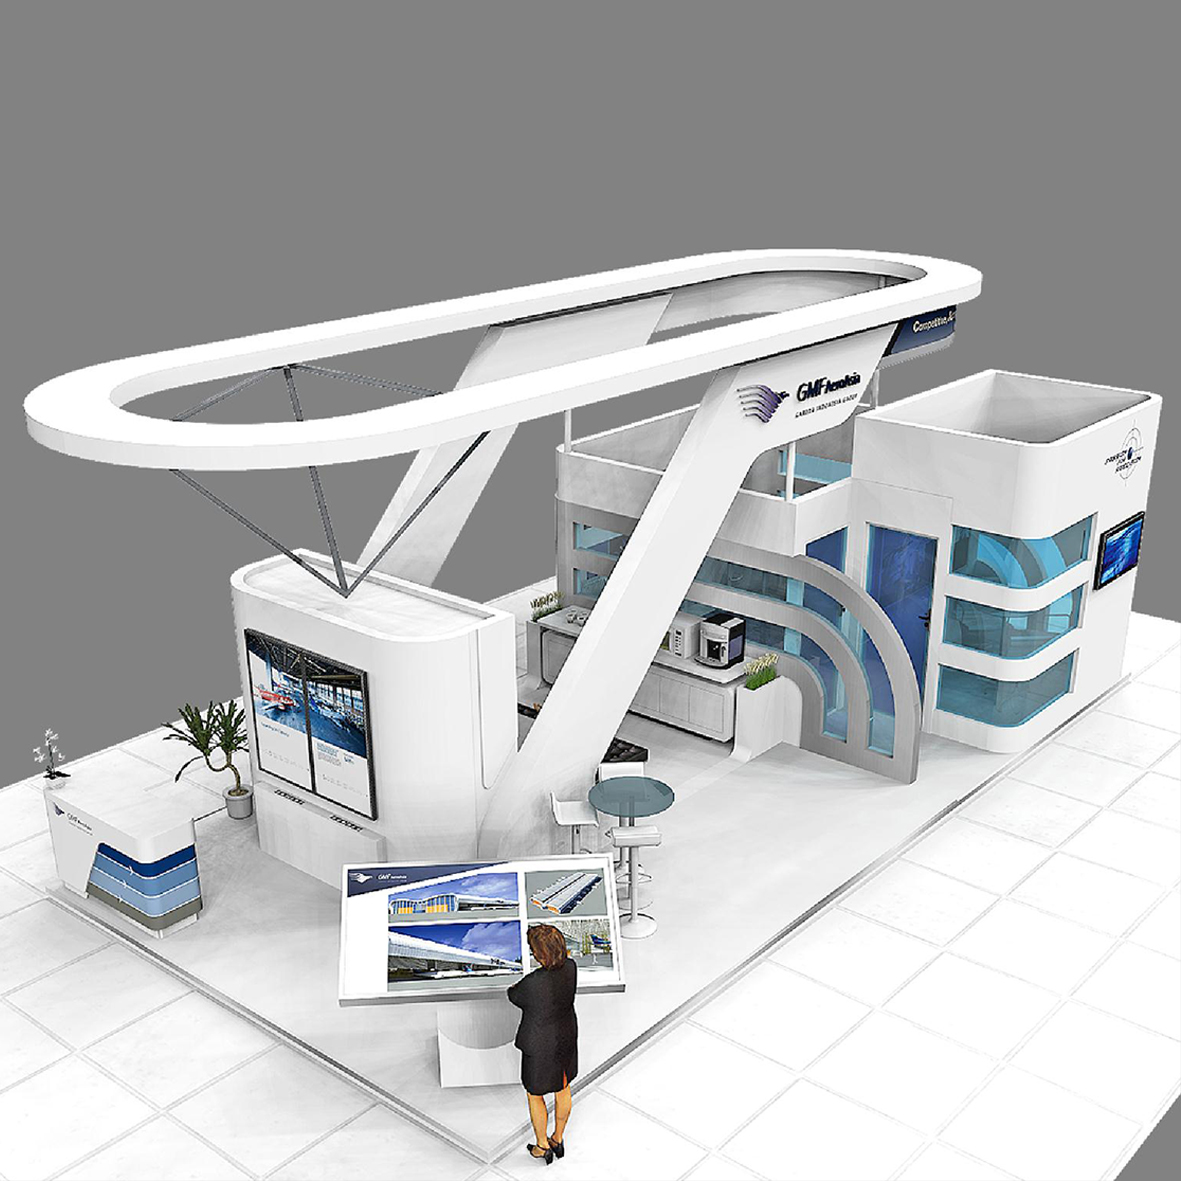 Design Booth Garuda Indonesia